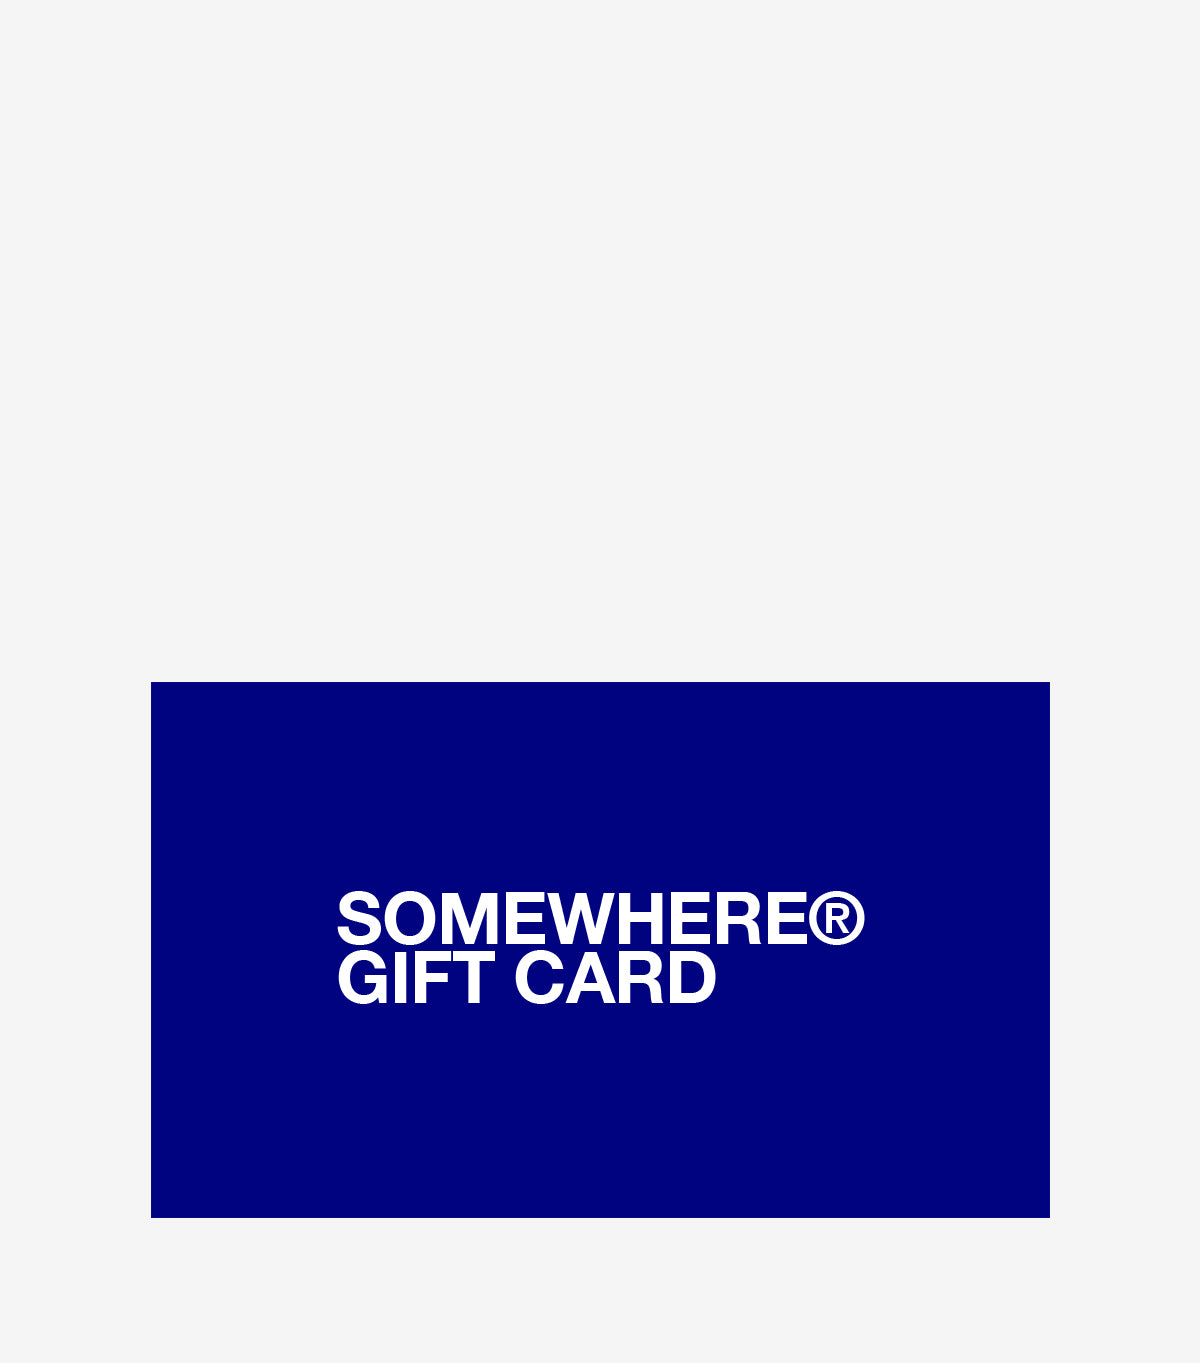 SOMEWHERE® Gift Card | somewhereofficial.